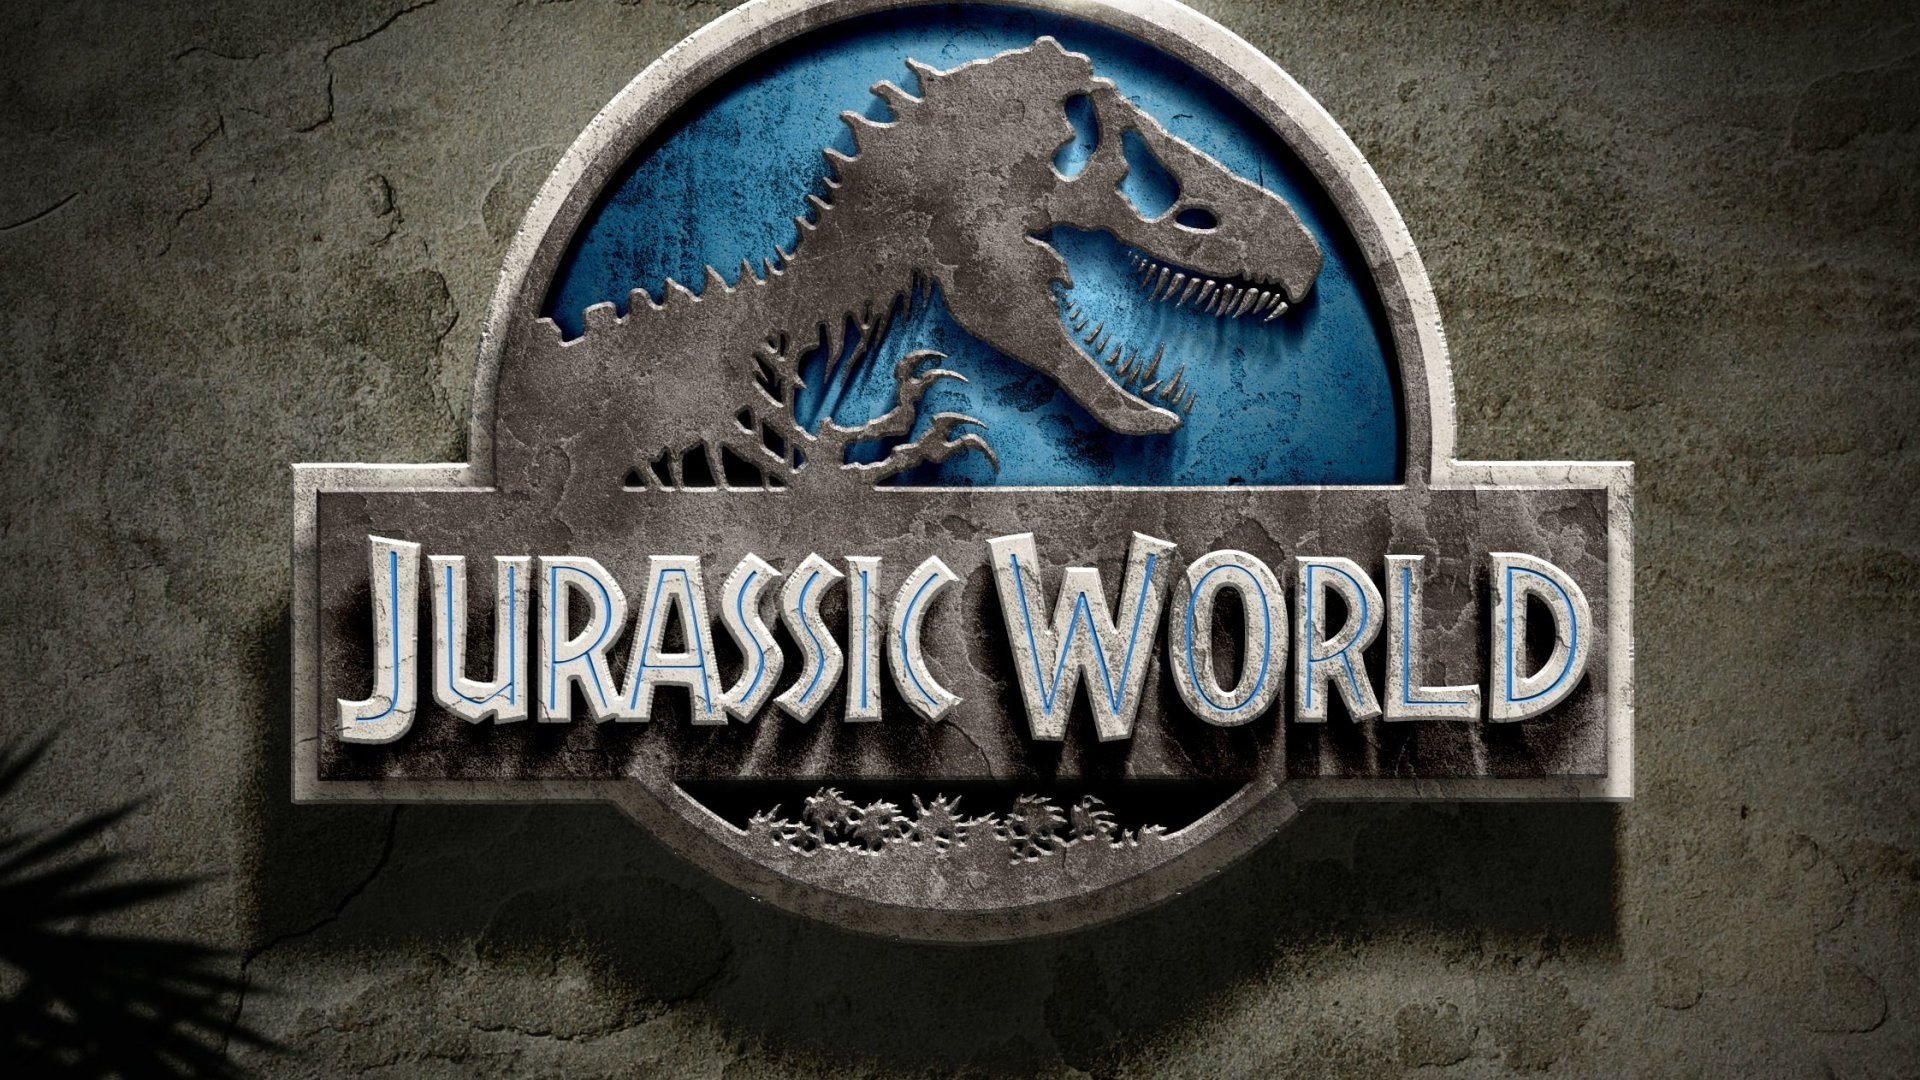 Jurassic World 2015 A Sky Of Books And Movies